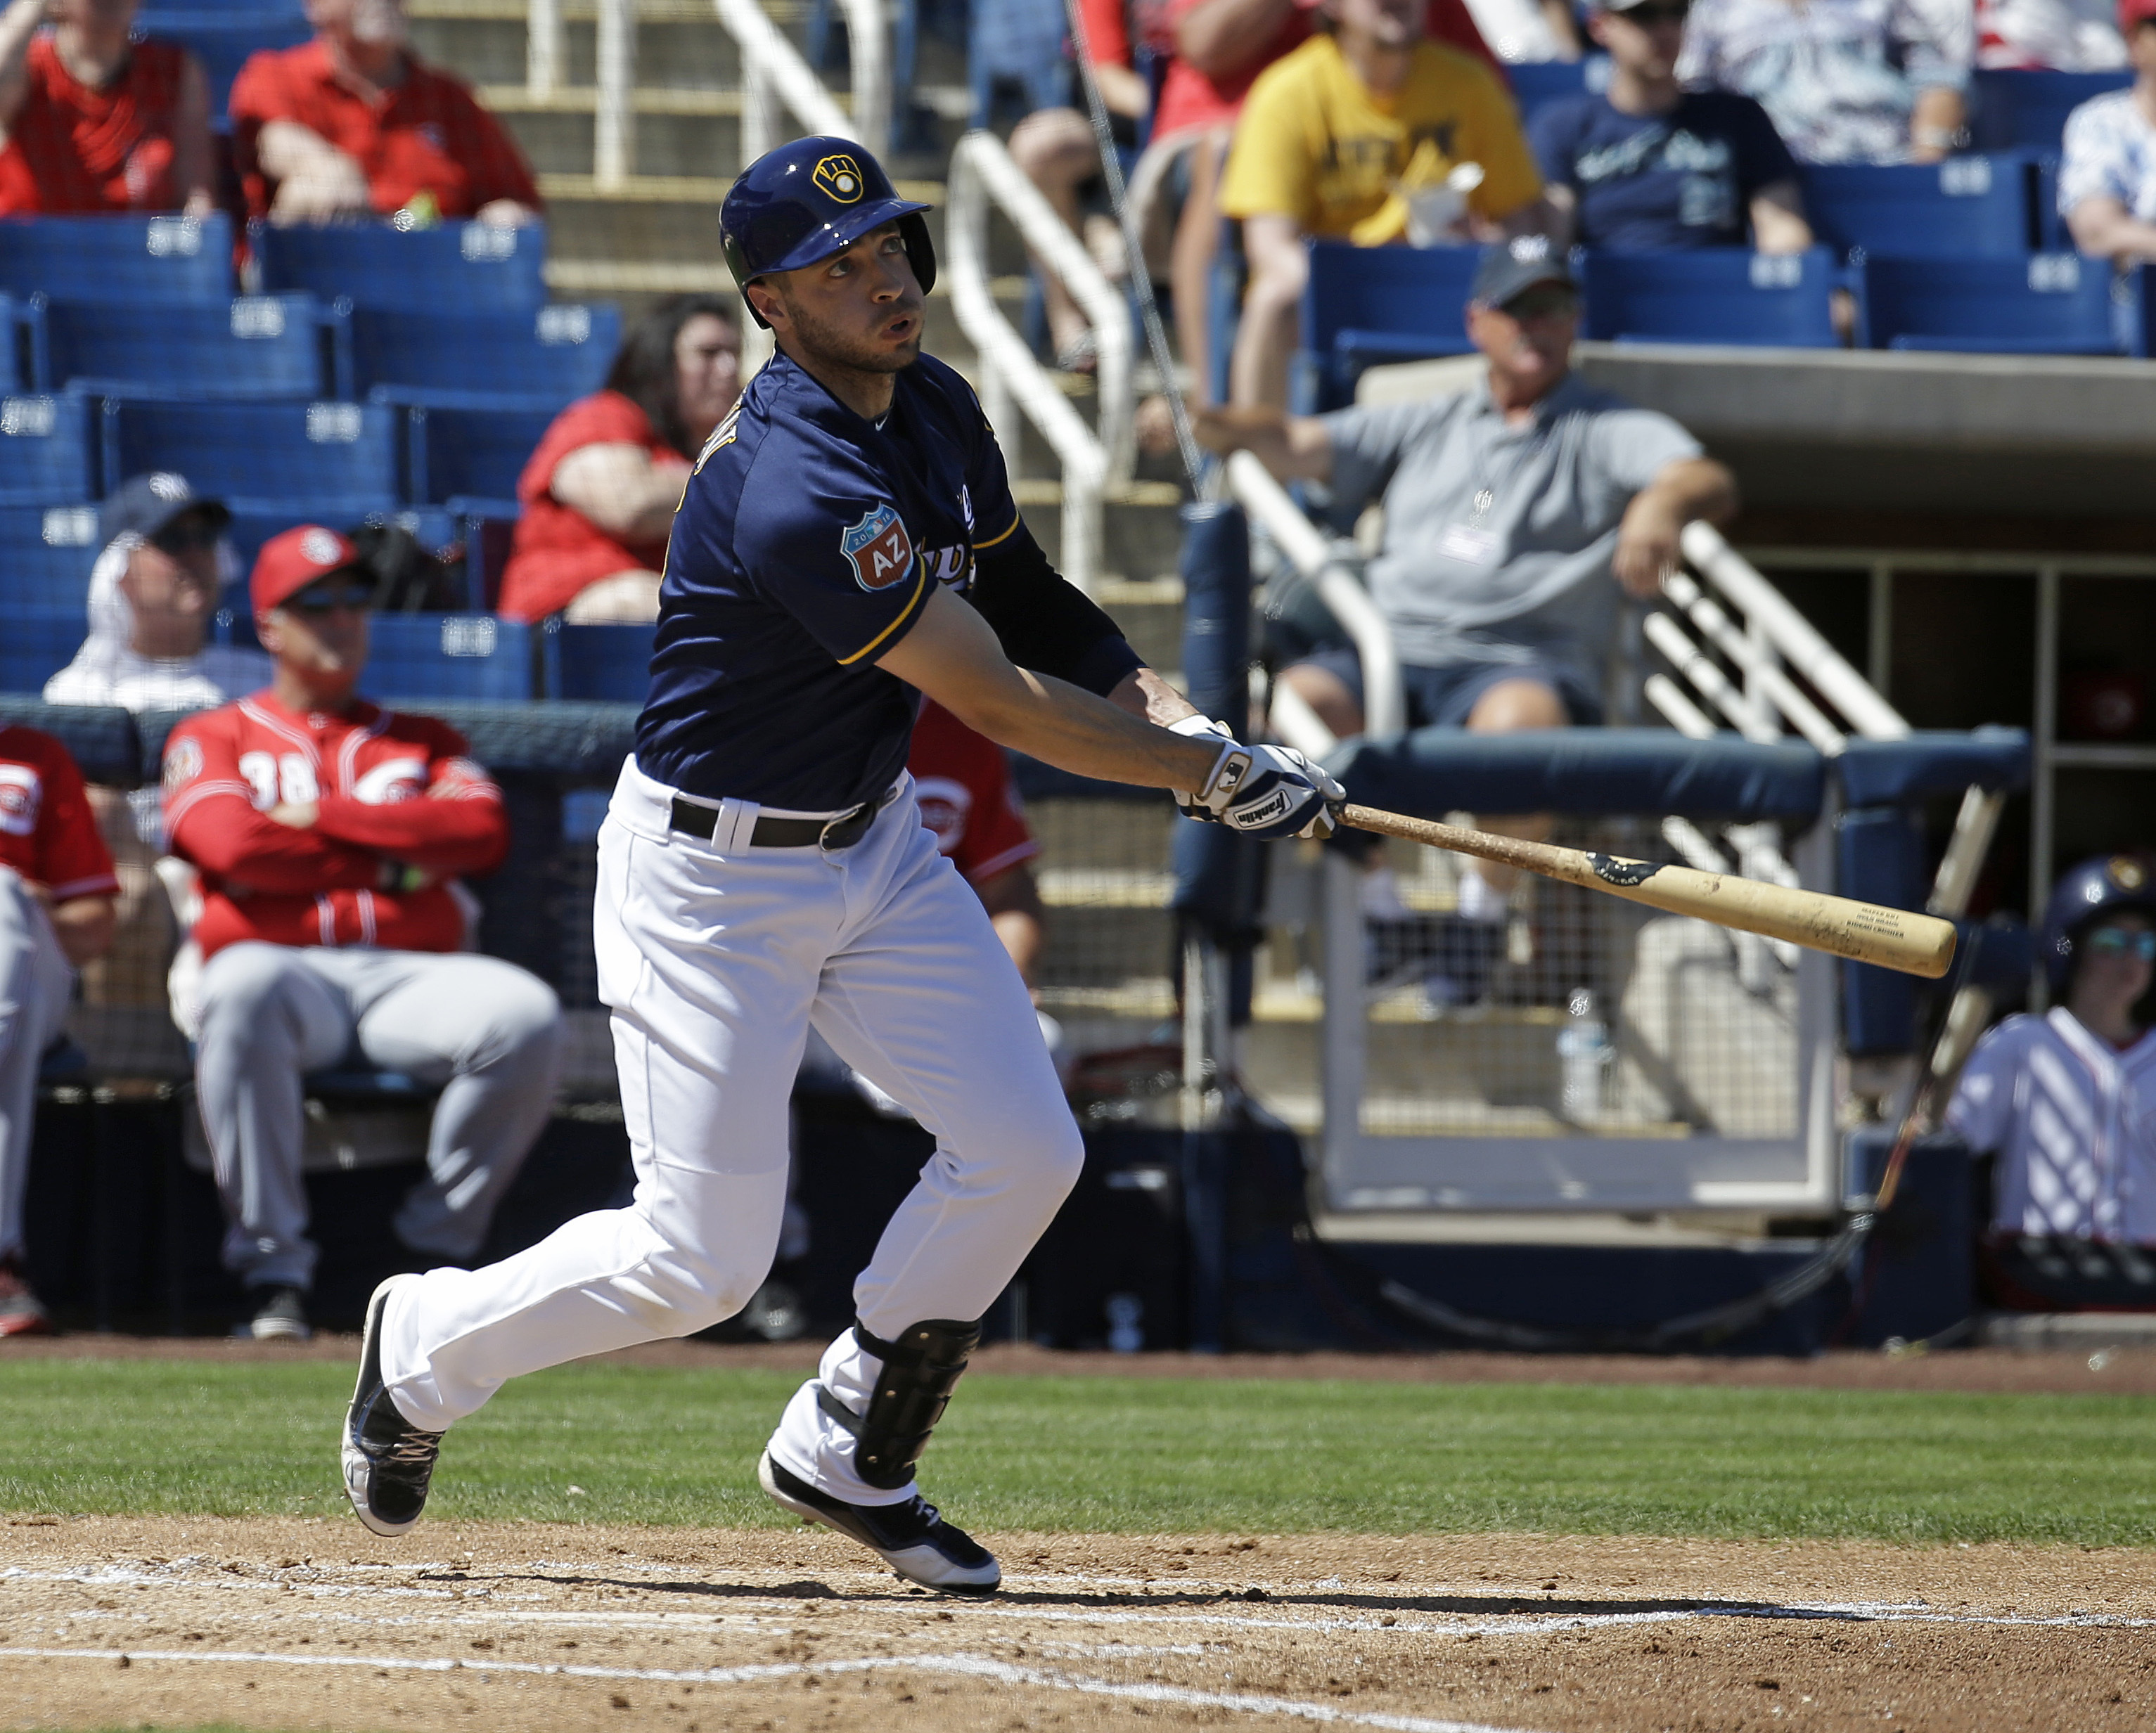 Milwaukee Brewers' Ryan Braun hits and RBI double during the first inning of a spring training baseball game against the Cincinnati Reds on Friday, March 18, 2016, in Phoenix. (AP Photo/Darron Cummings)